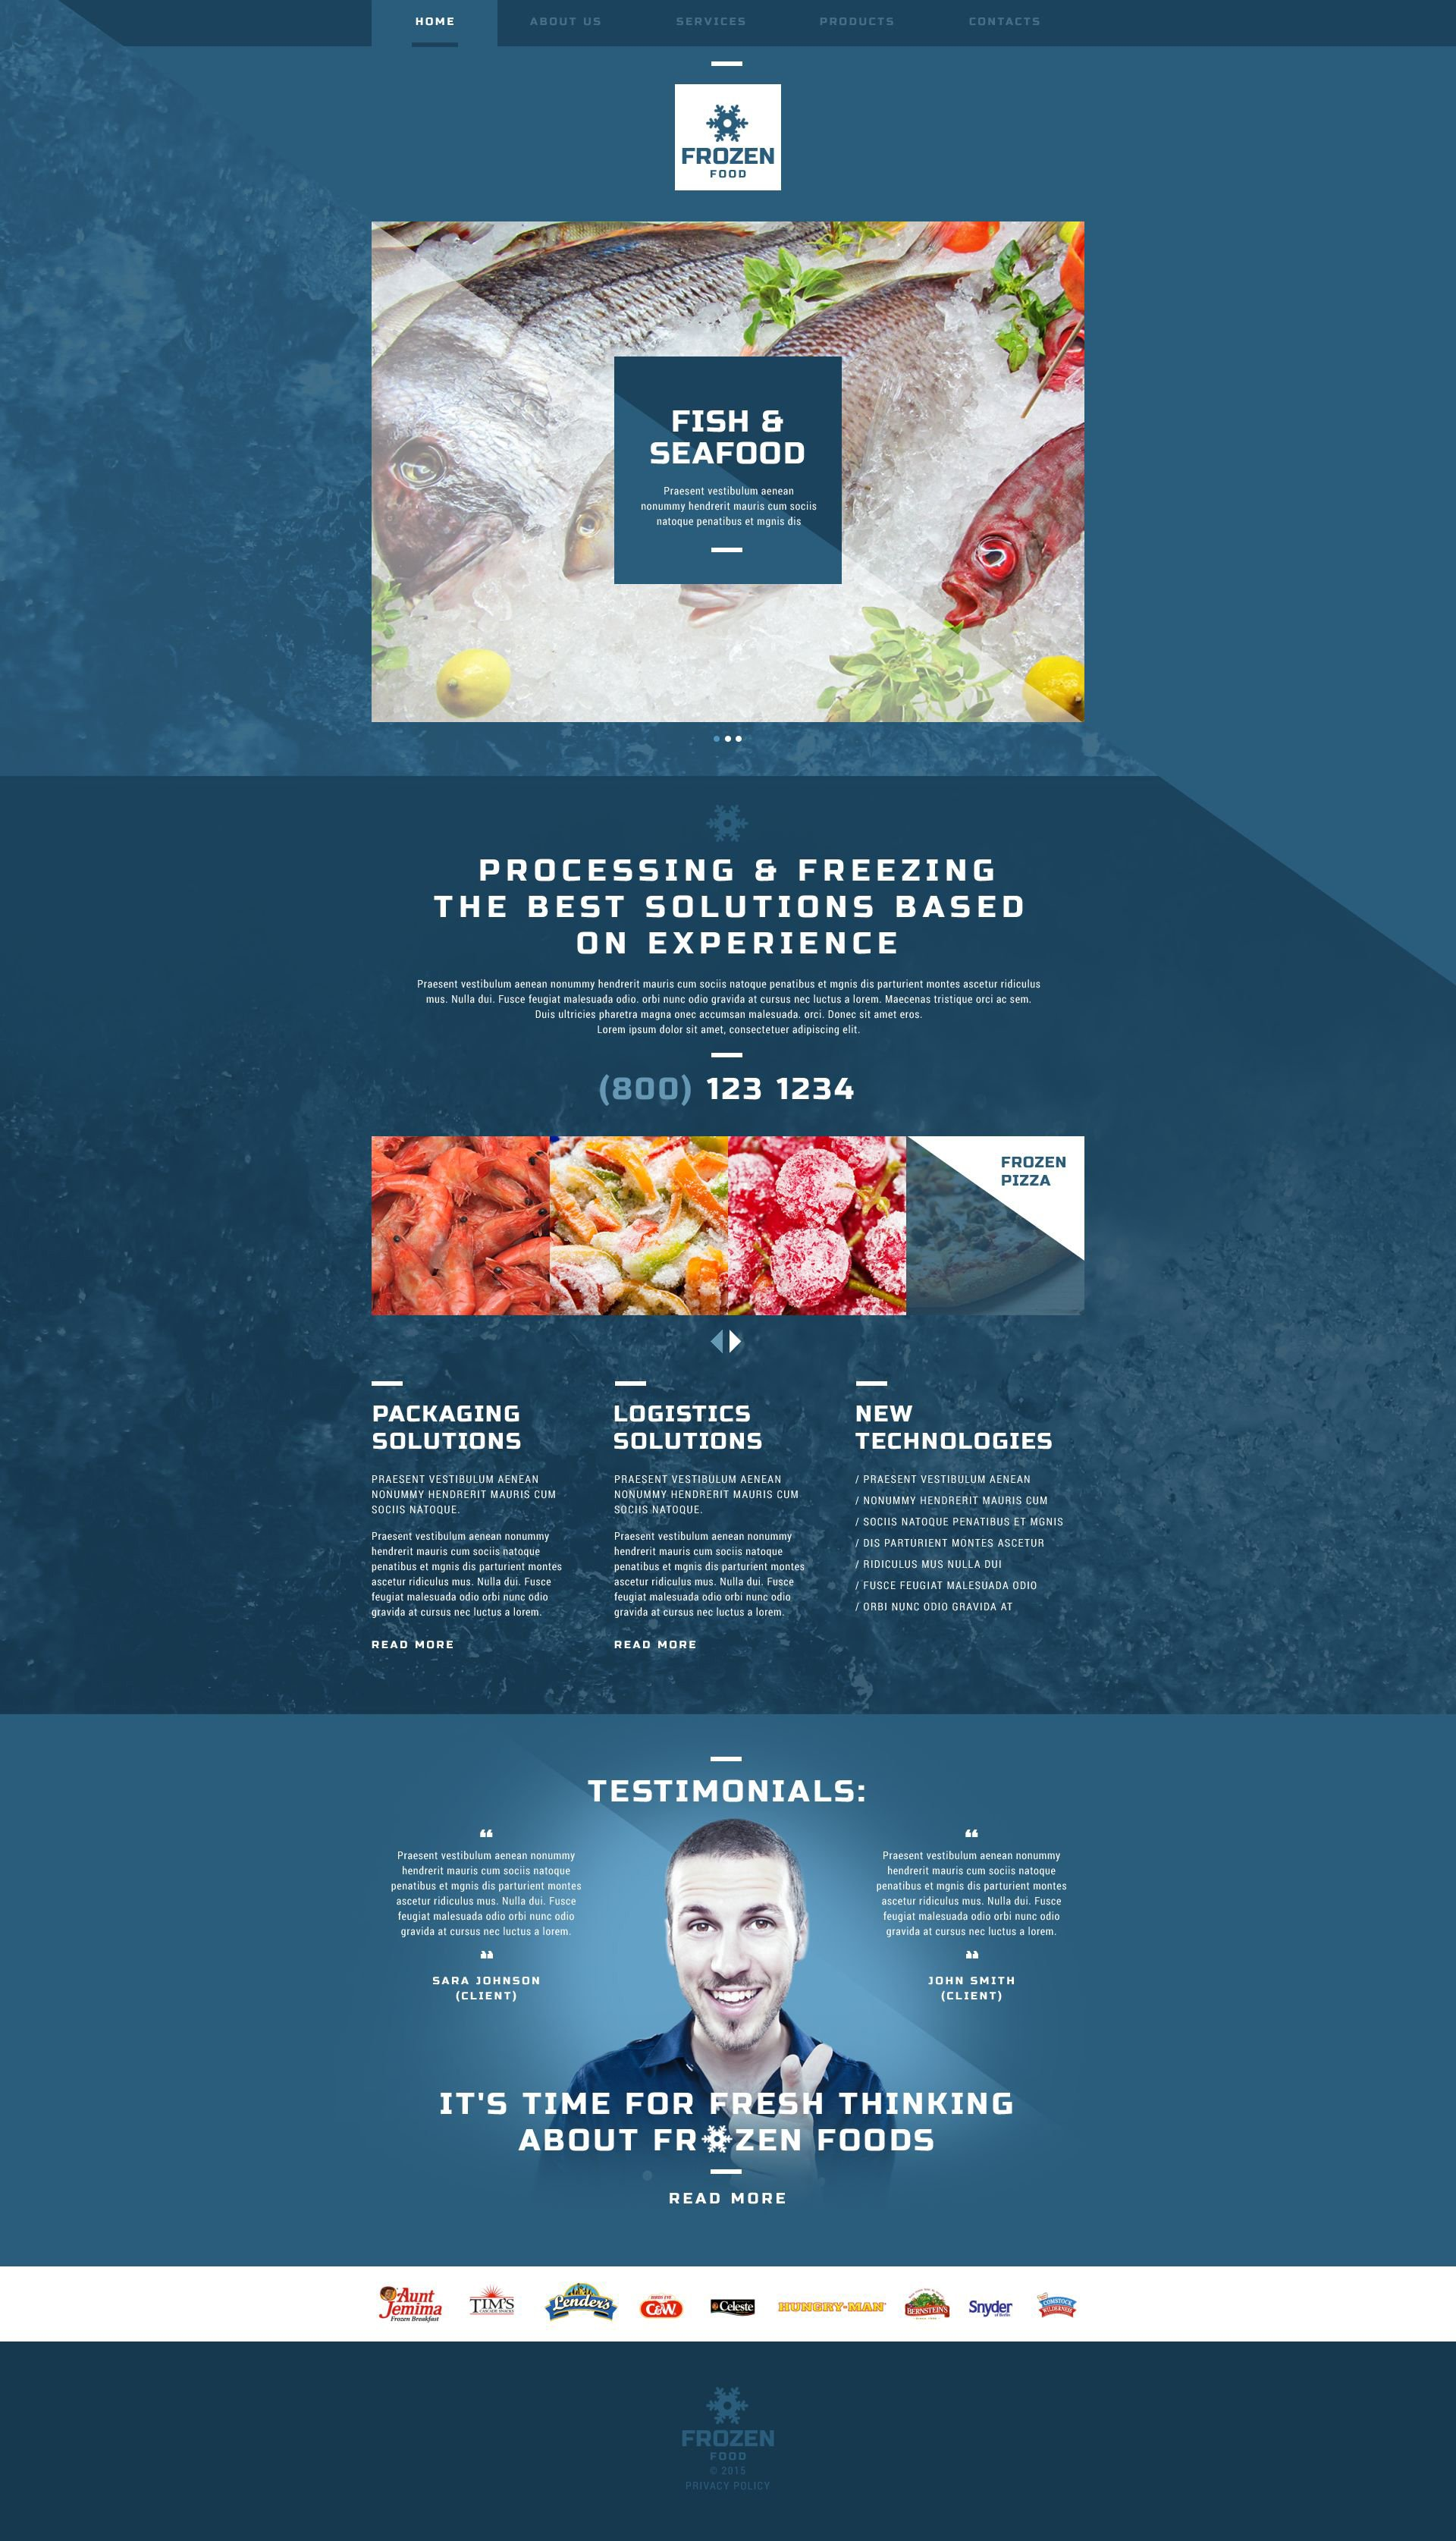 The Frozen Food Responsive Javascript Animated Design 53900, one of the best website templates of its kind (food & drink), also known as frozen food website template, products website template, sea website template, meat website template, dishes website template, desserts website template, delivery website template, delivering website template, apple website template, quality website template, fresh and related with frozen food, products, sea, meat, dishes, desserts, delivery, delivering, apple, quality, fresh, etc.